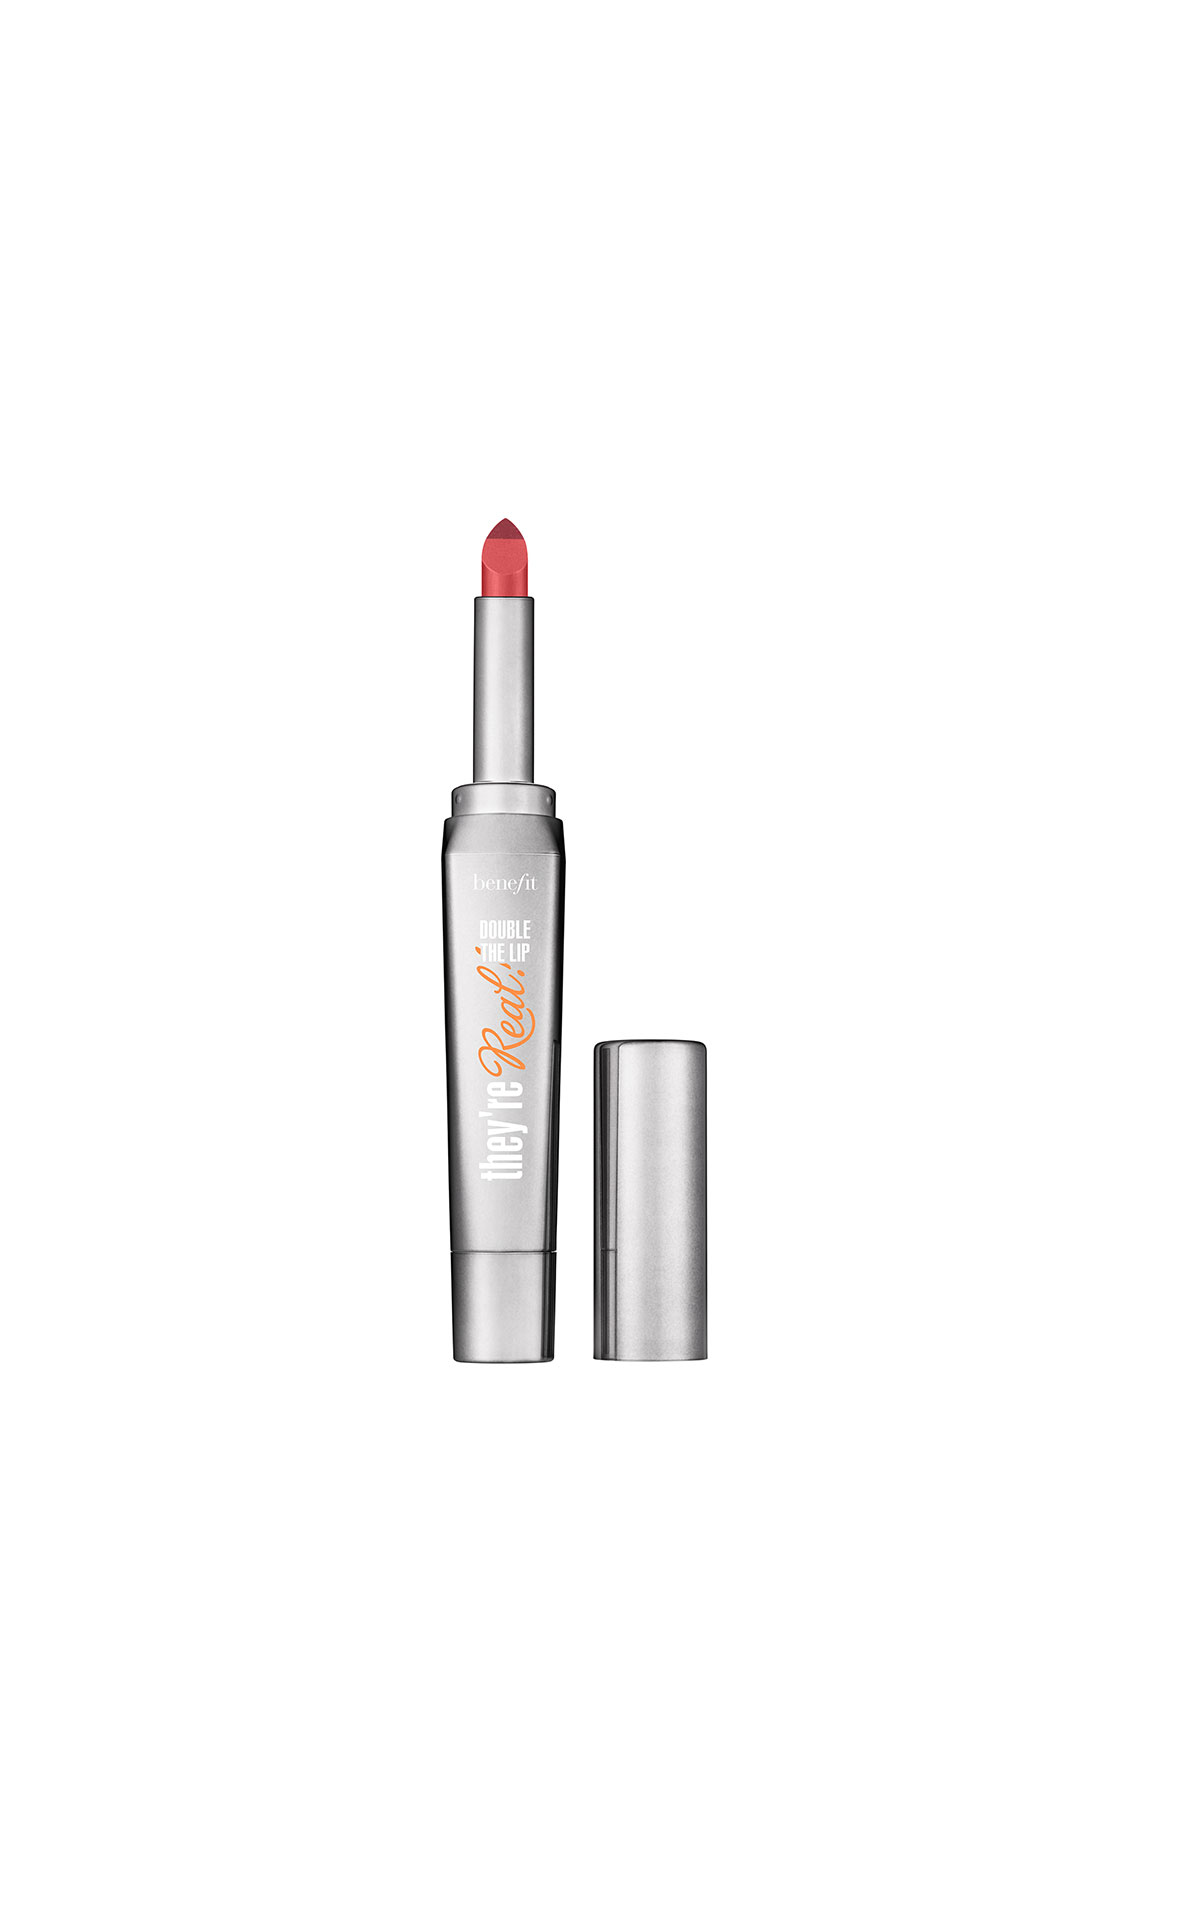 Benefit Cosmetics They're Real Double the Lip lipstick from Bicester Village